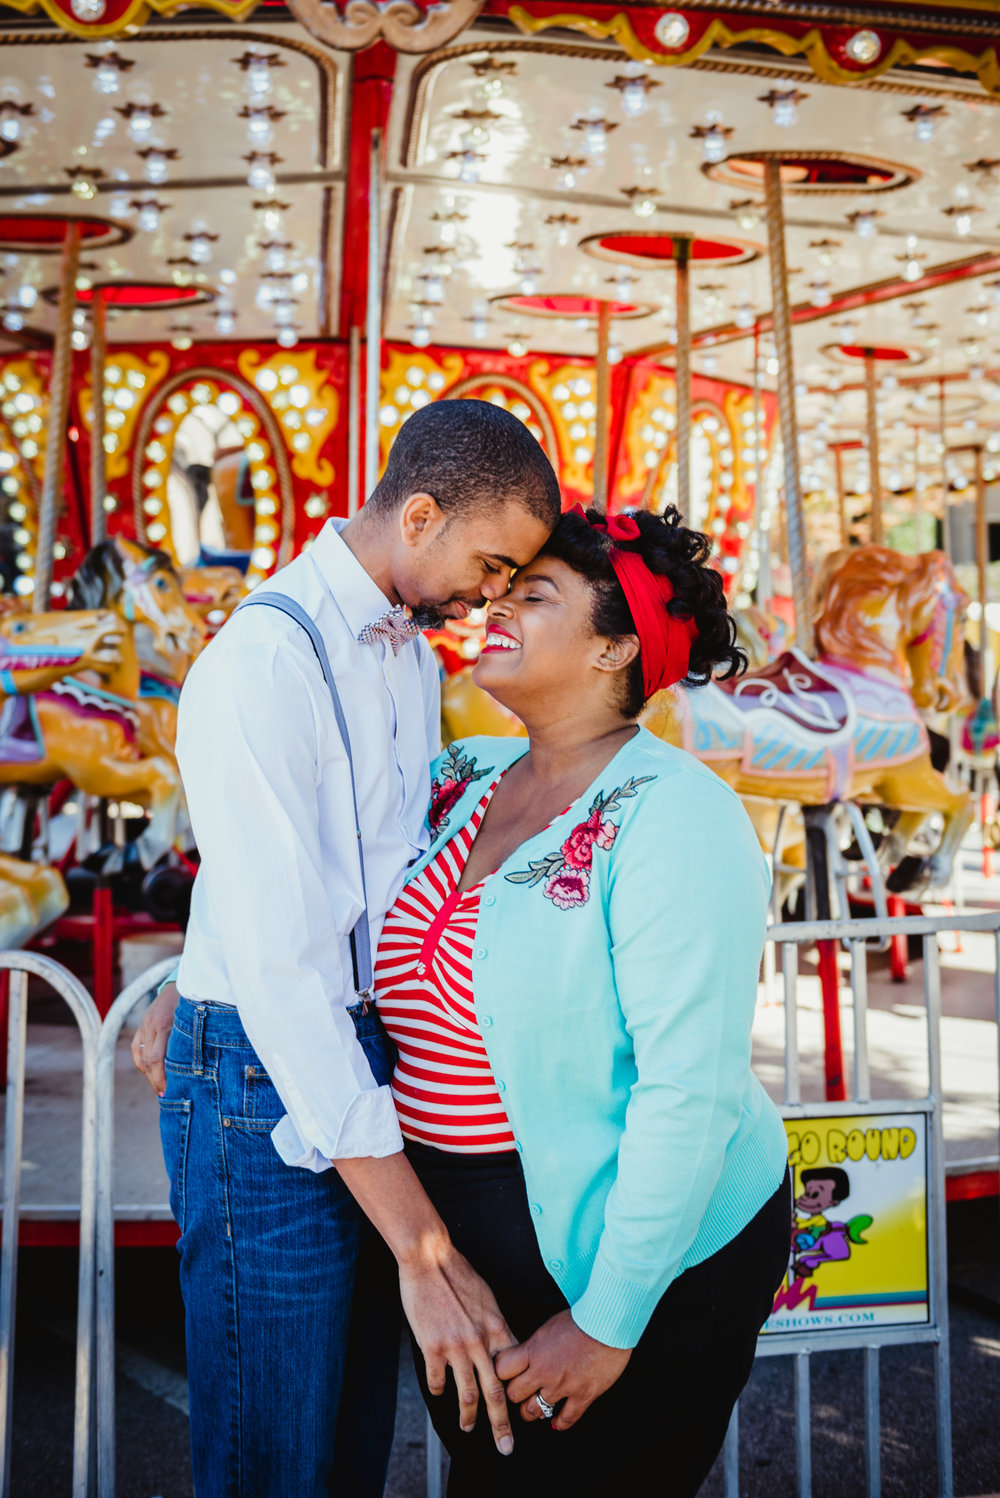 the-sweetest-anniversary-session-at-the-carousel-at-the-NC-State-fair.jpg